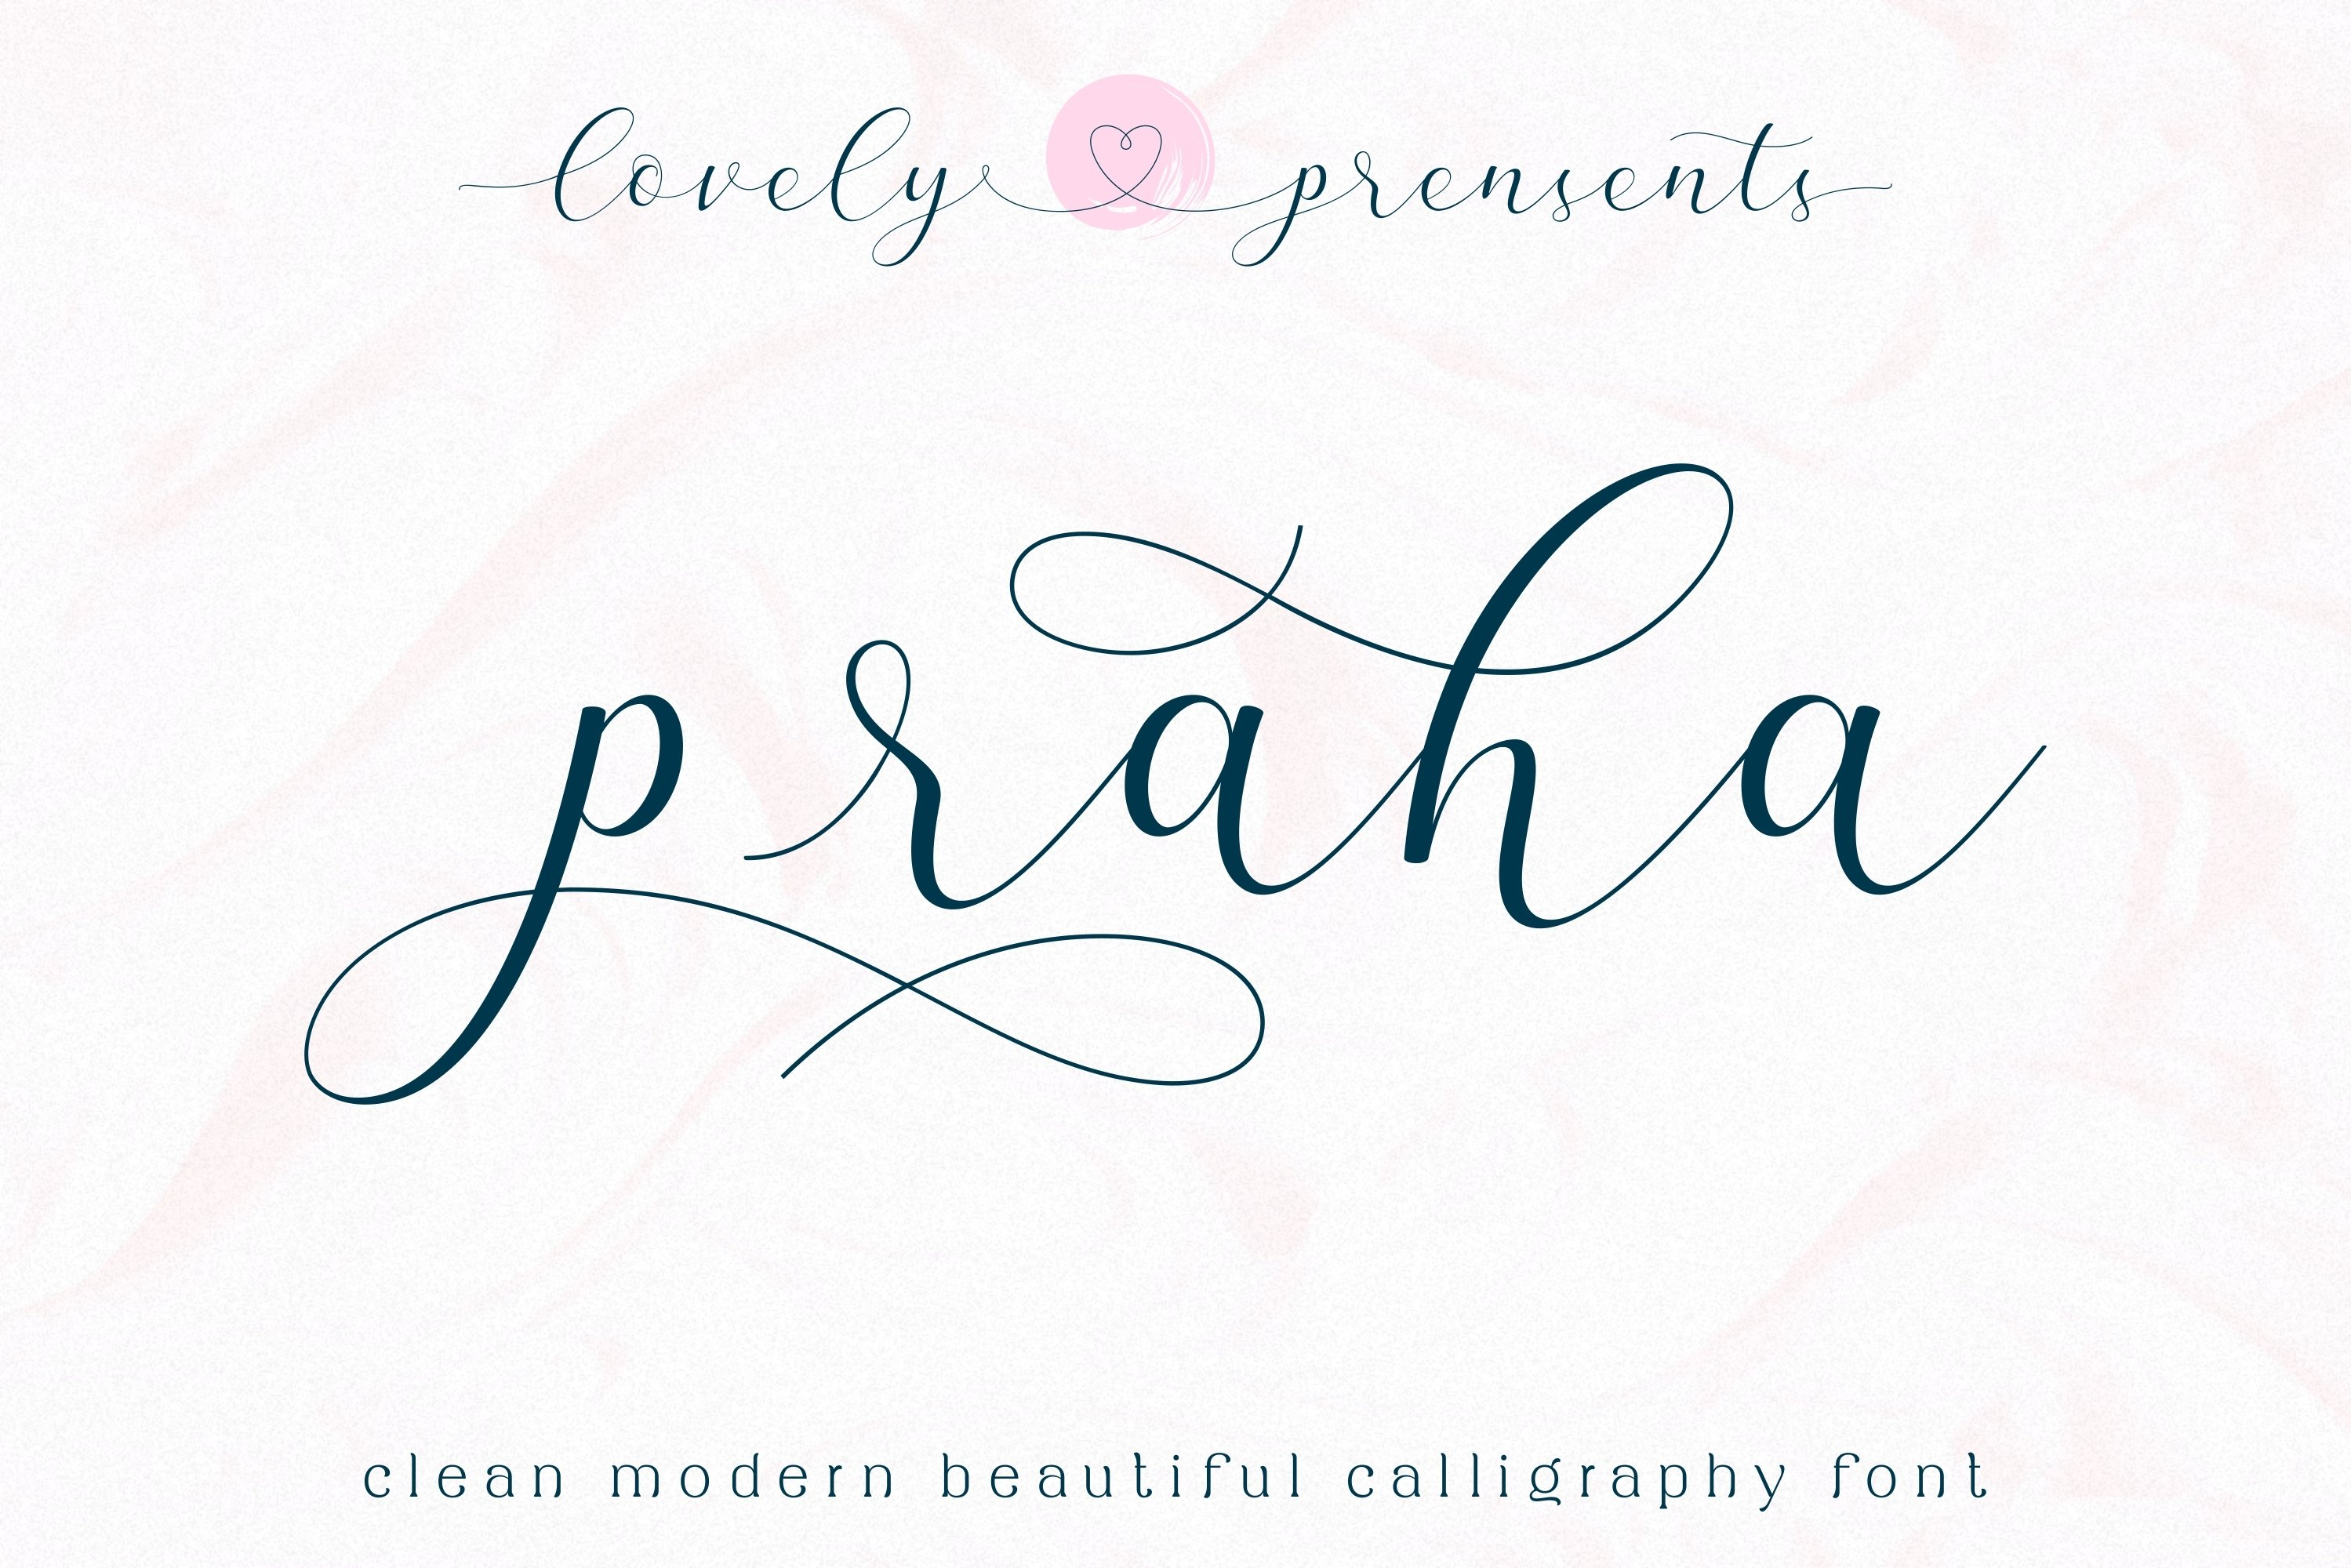 Praha - lovely clean modern calligraphy font example image 1